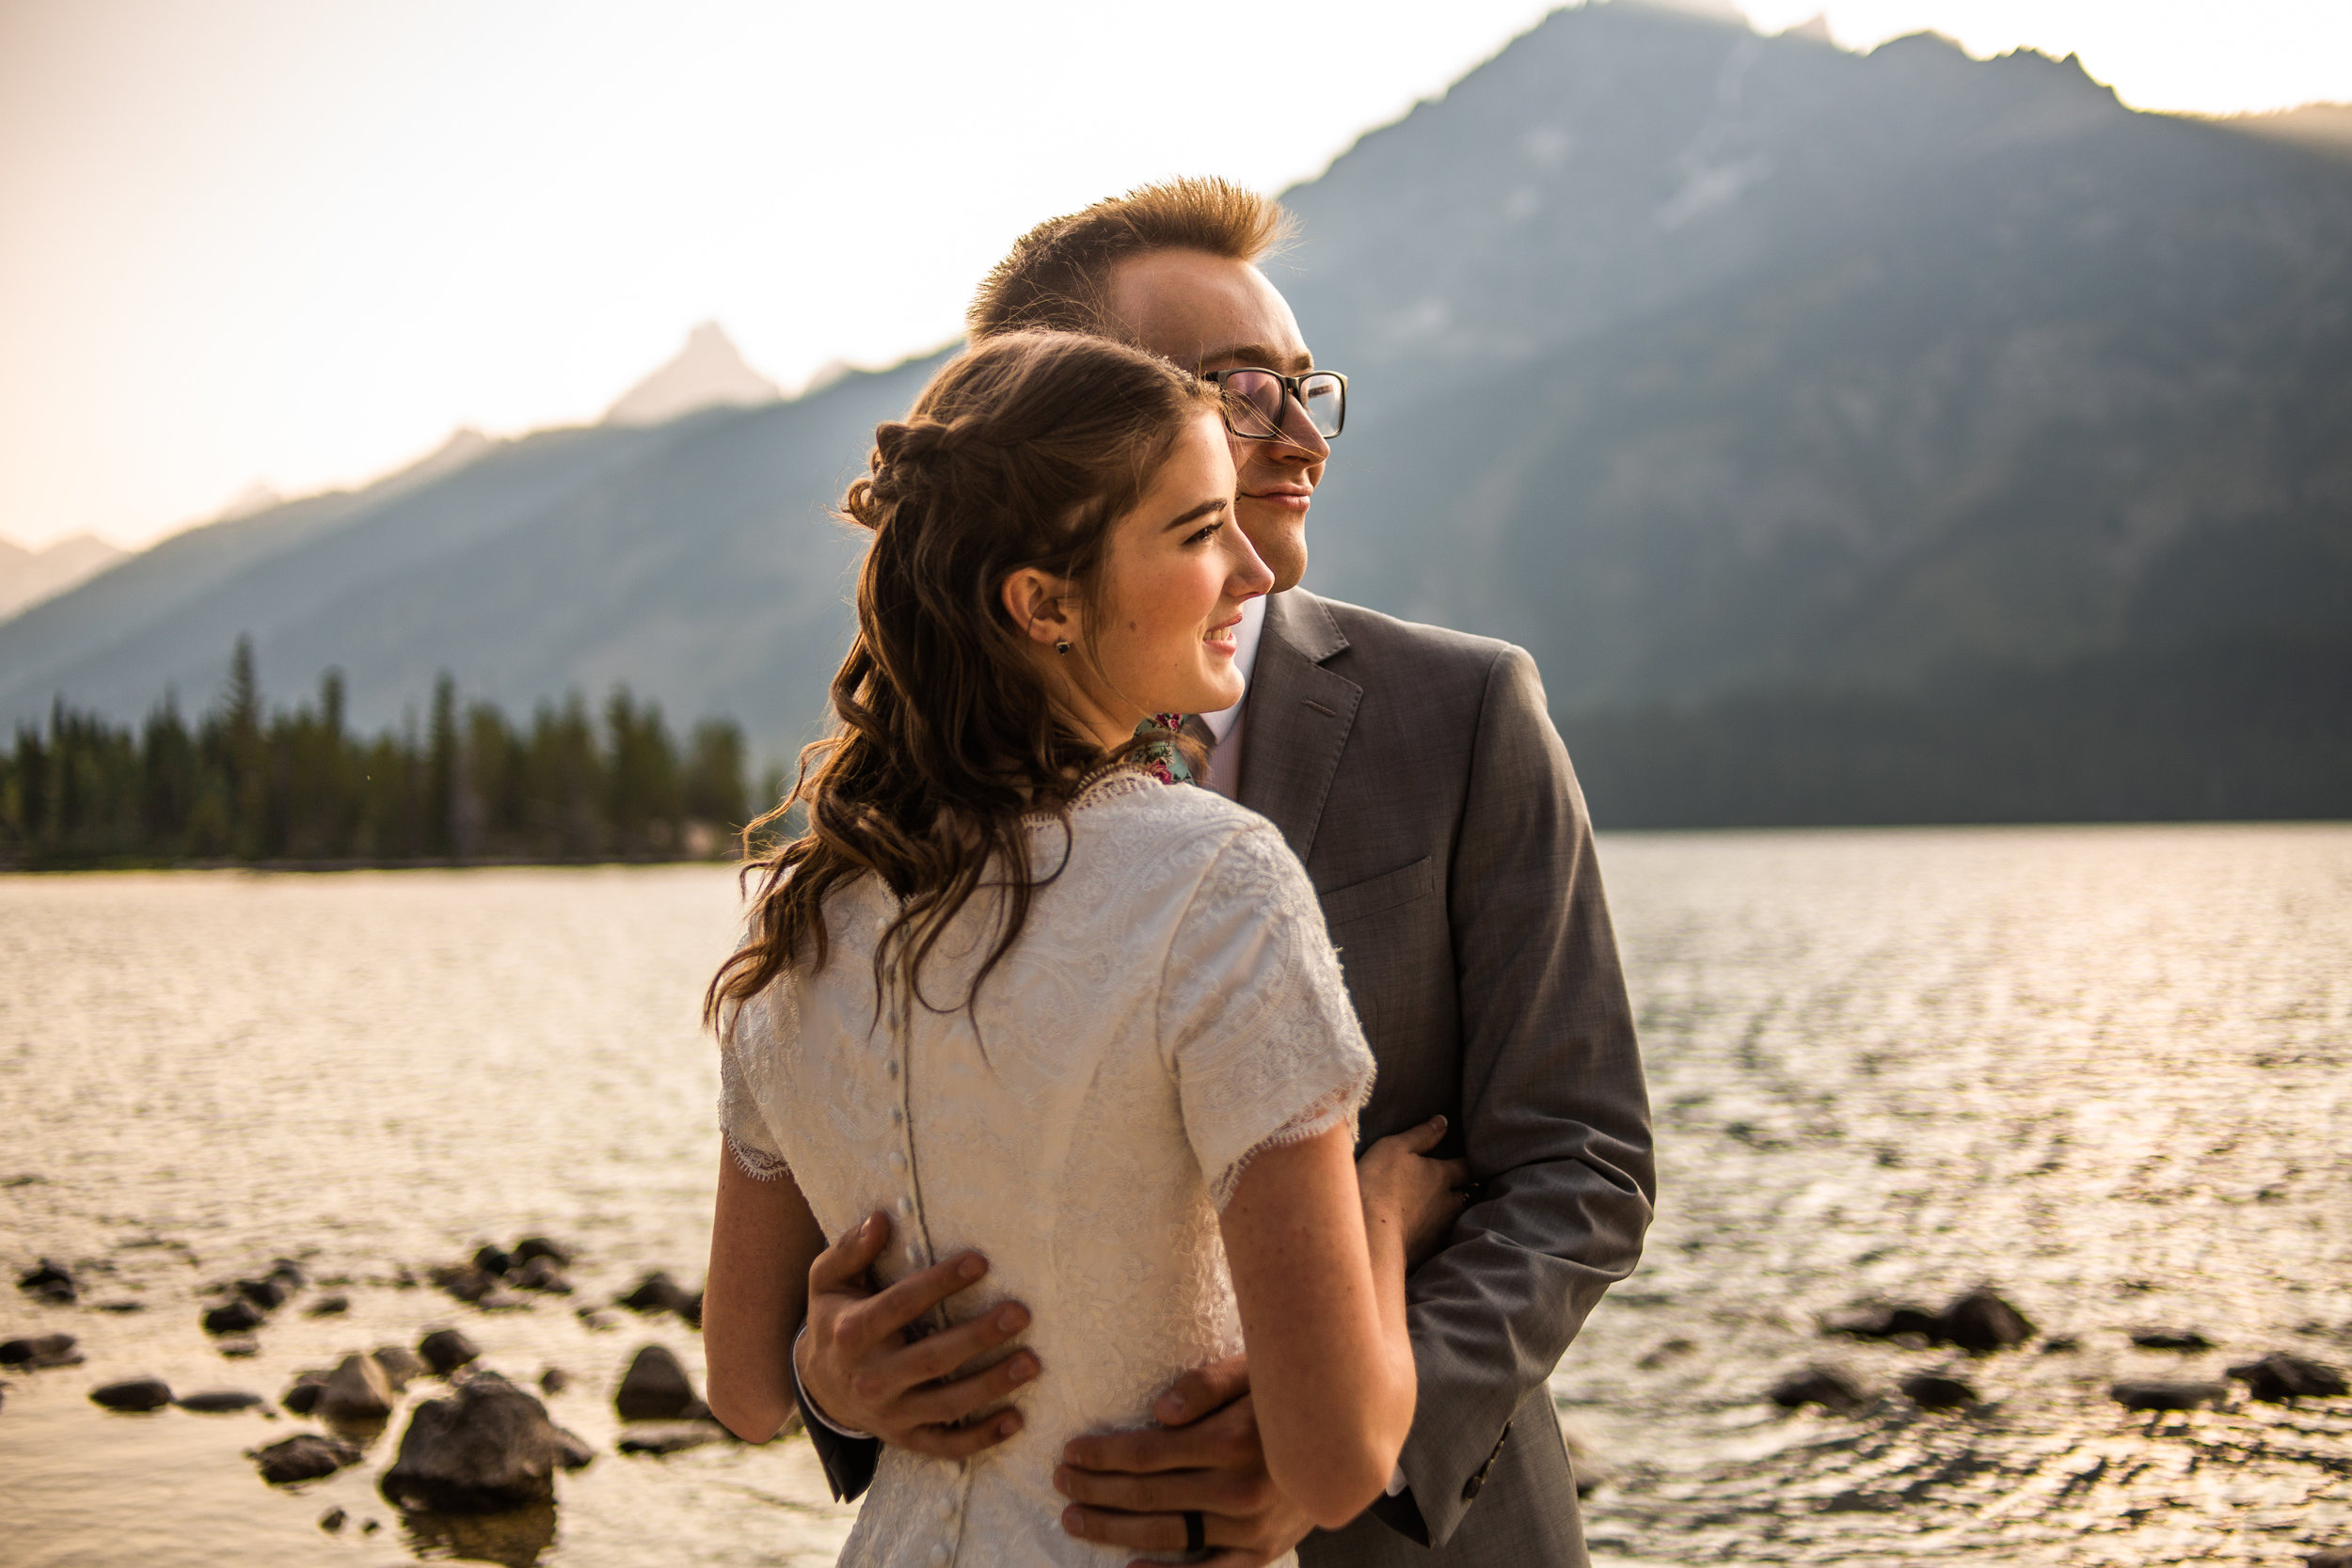 Grand-Teton-National-Park-Bridal-Session26.jpg